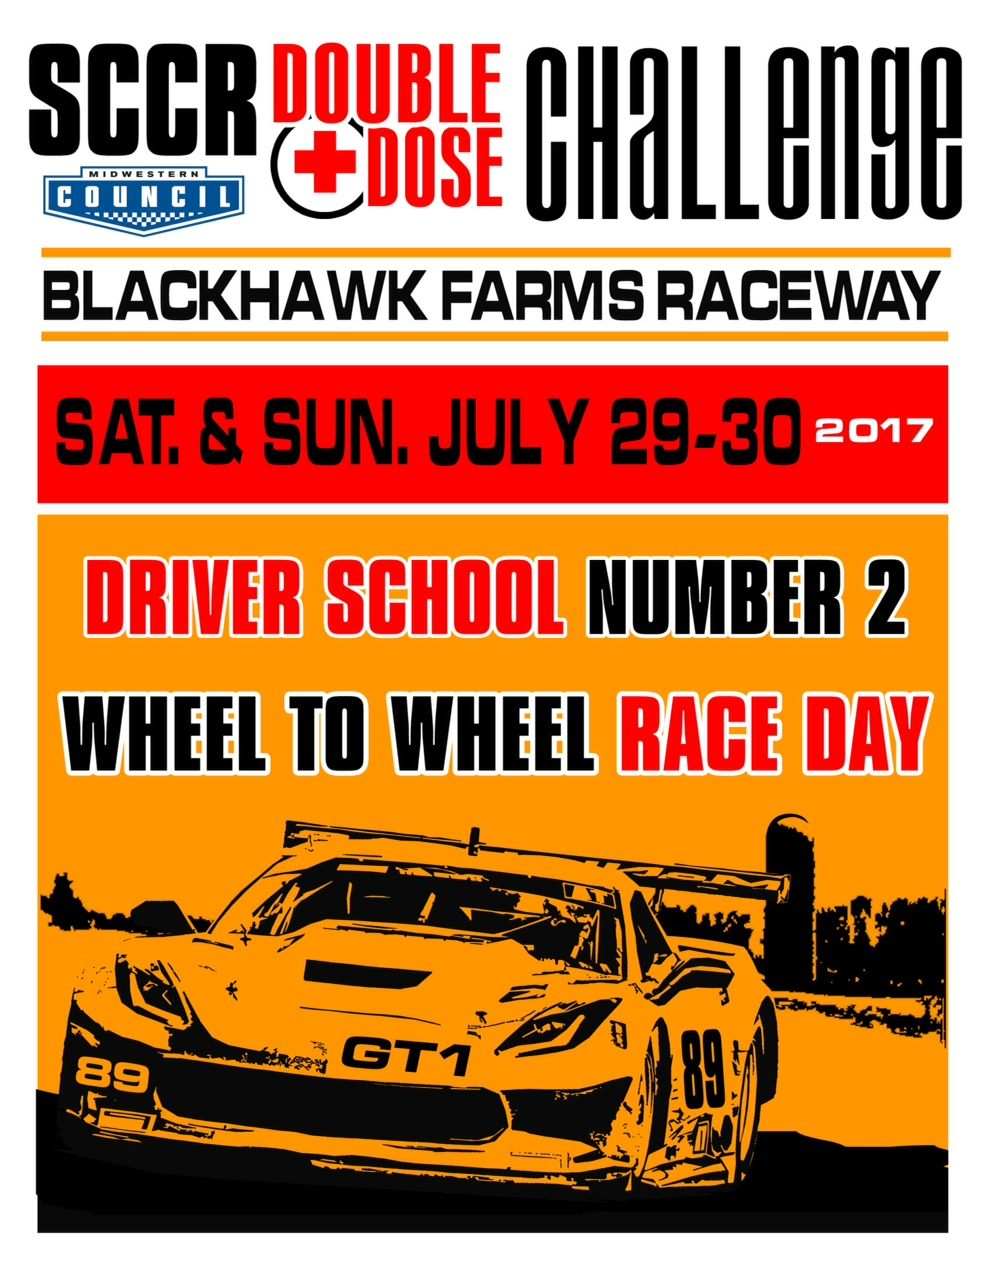 double dose challenge midwestern council race 4 info on jul 30